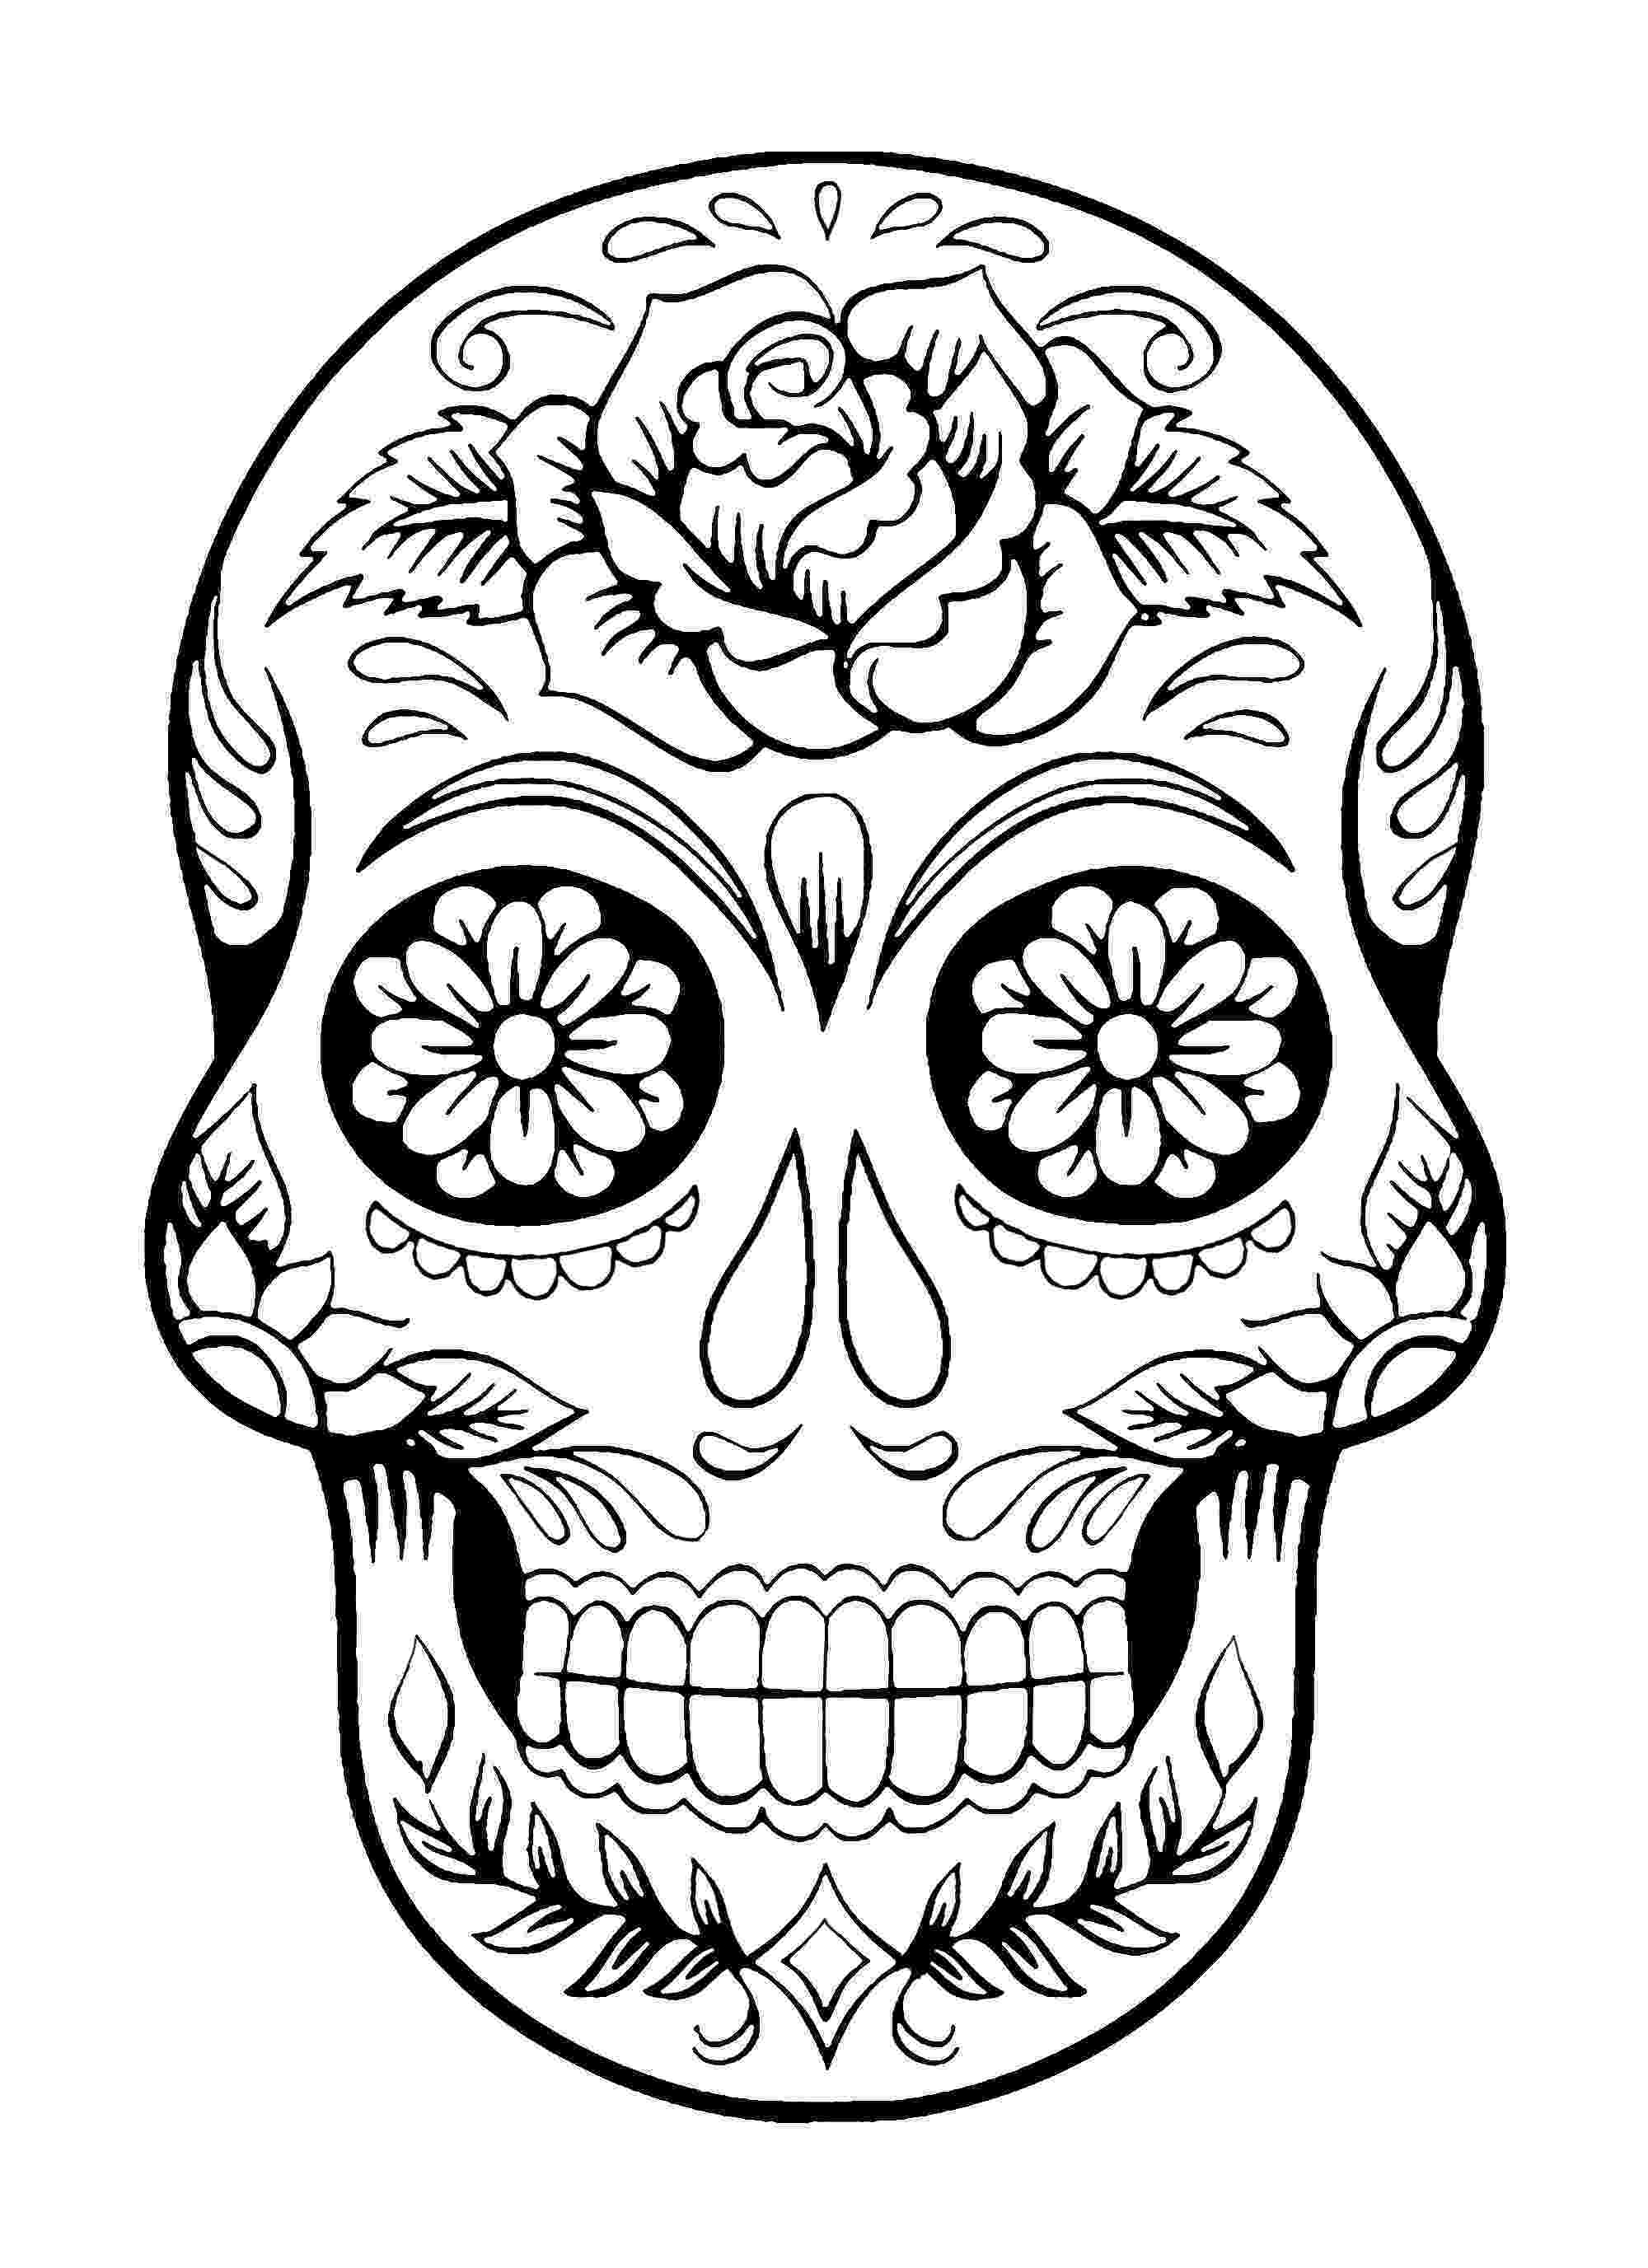 day of the dead coloring skulls day of the dead skull coloring page enjoy coloring day skulls coloring of the dead